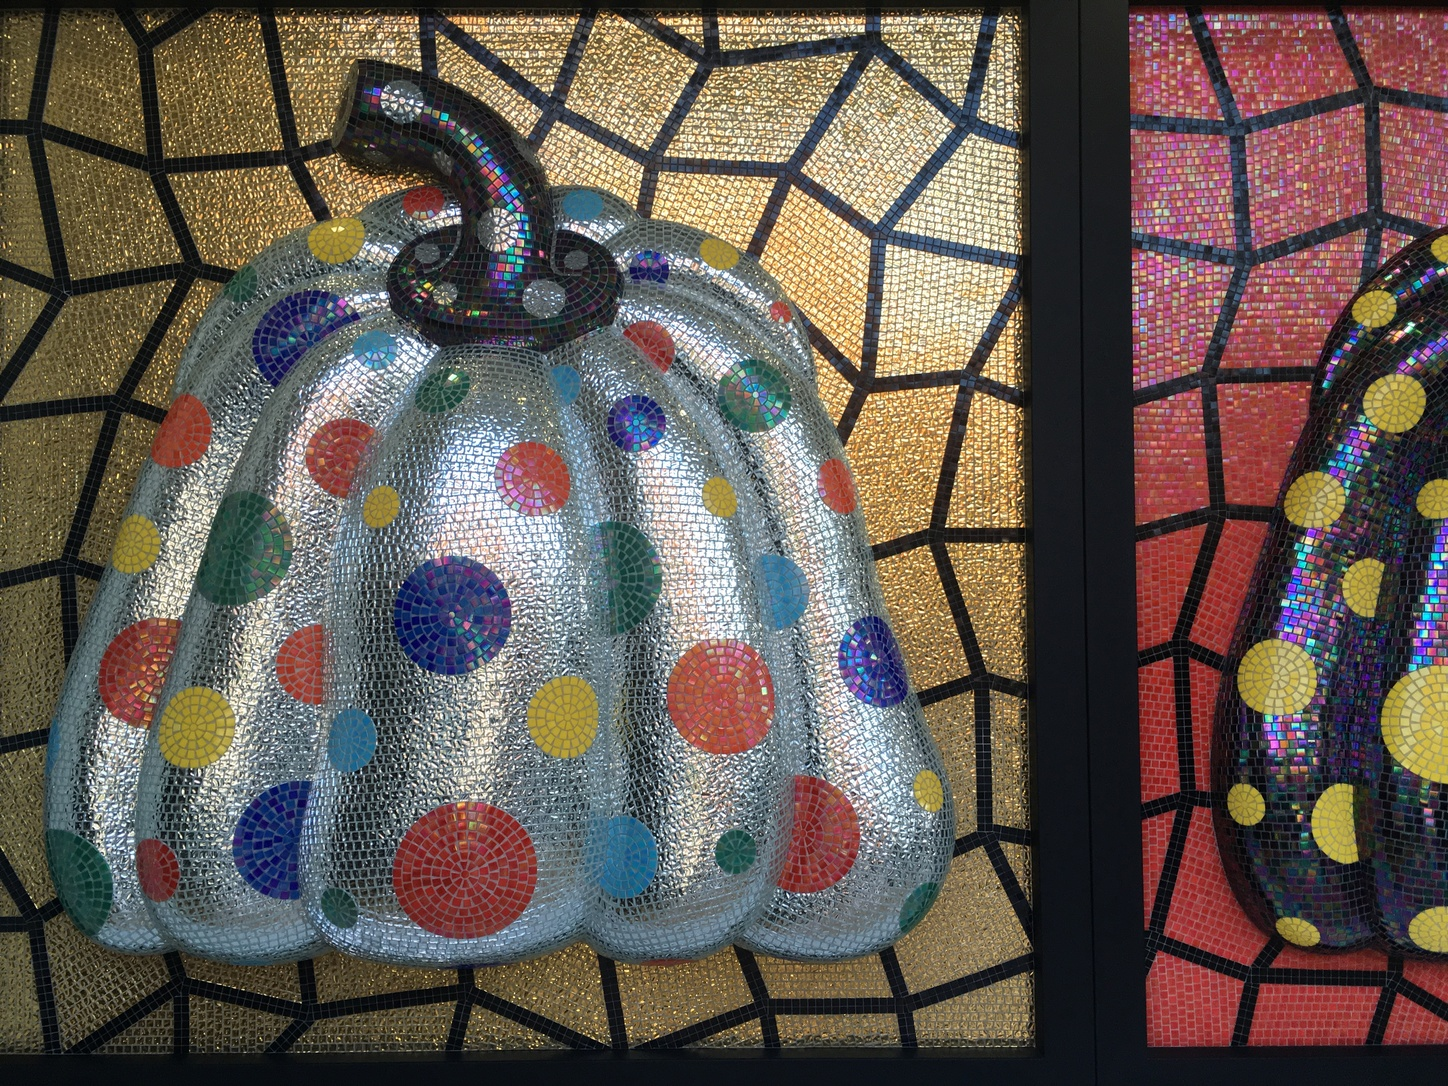 Kusama's famed pumpkin paintings and sculptures make an appearance